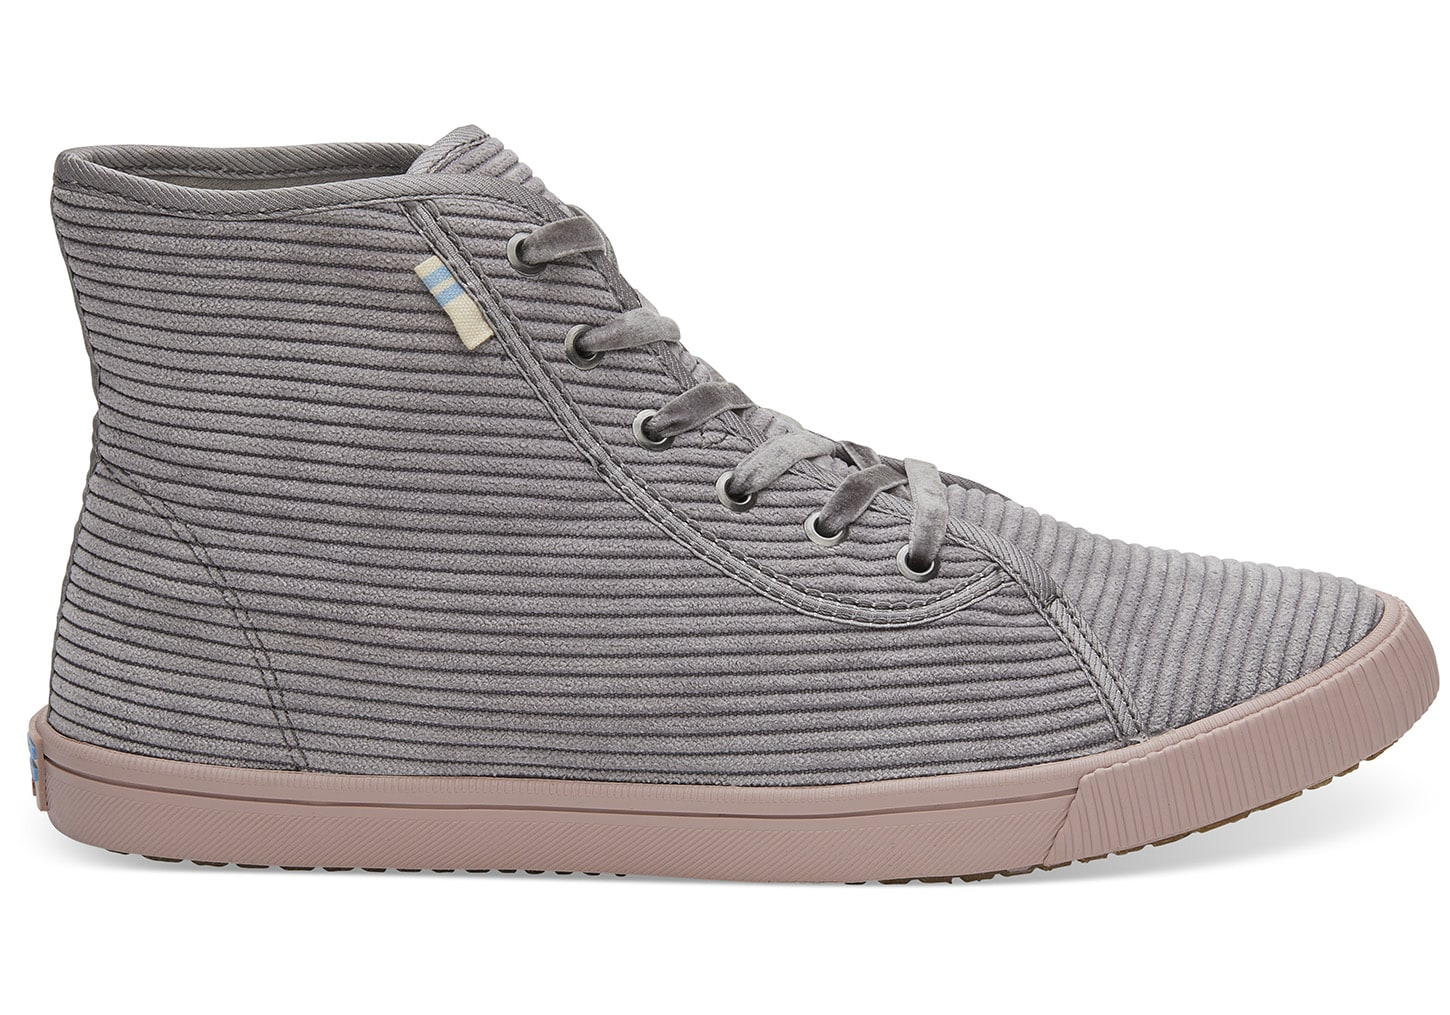 low priced d7a1b d3822 Toms gray sneakers Camarillo Cement Corduroy